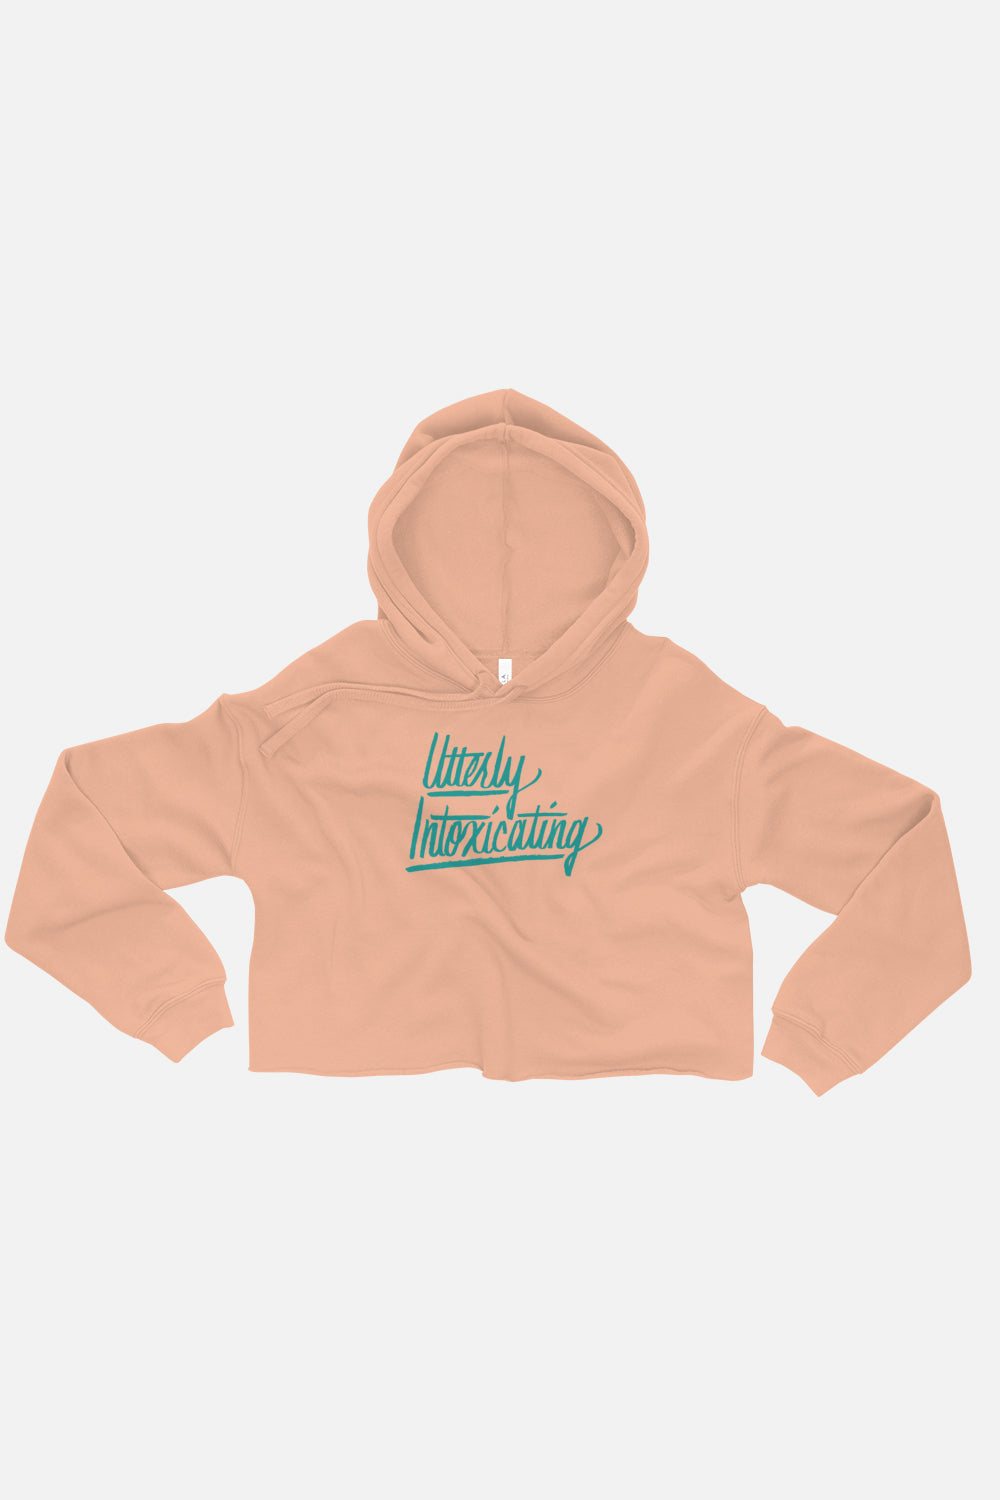 Utterly Intoxicating Fitted Crop Hoodie | Sarah MacLean